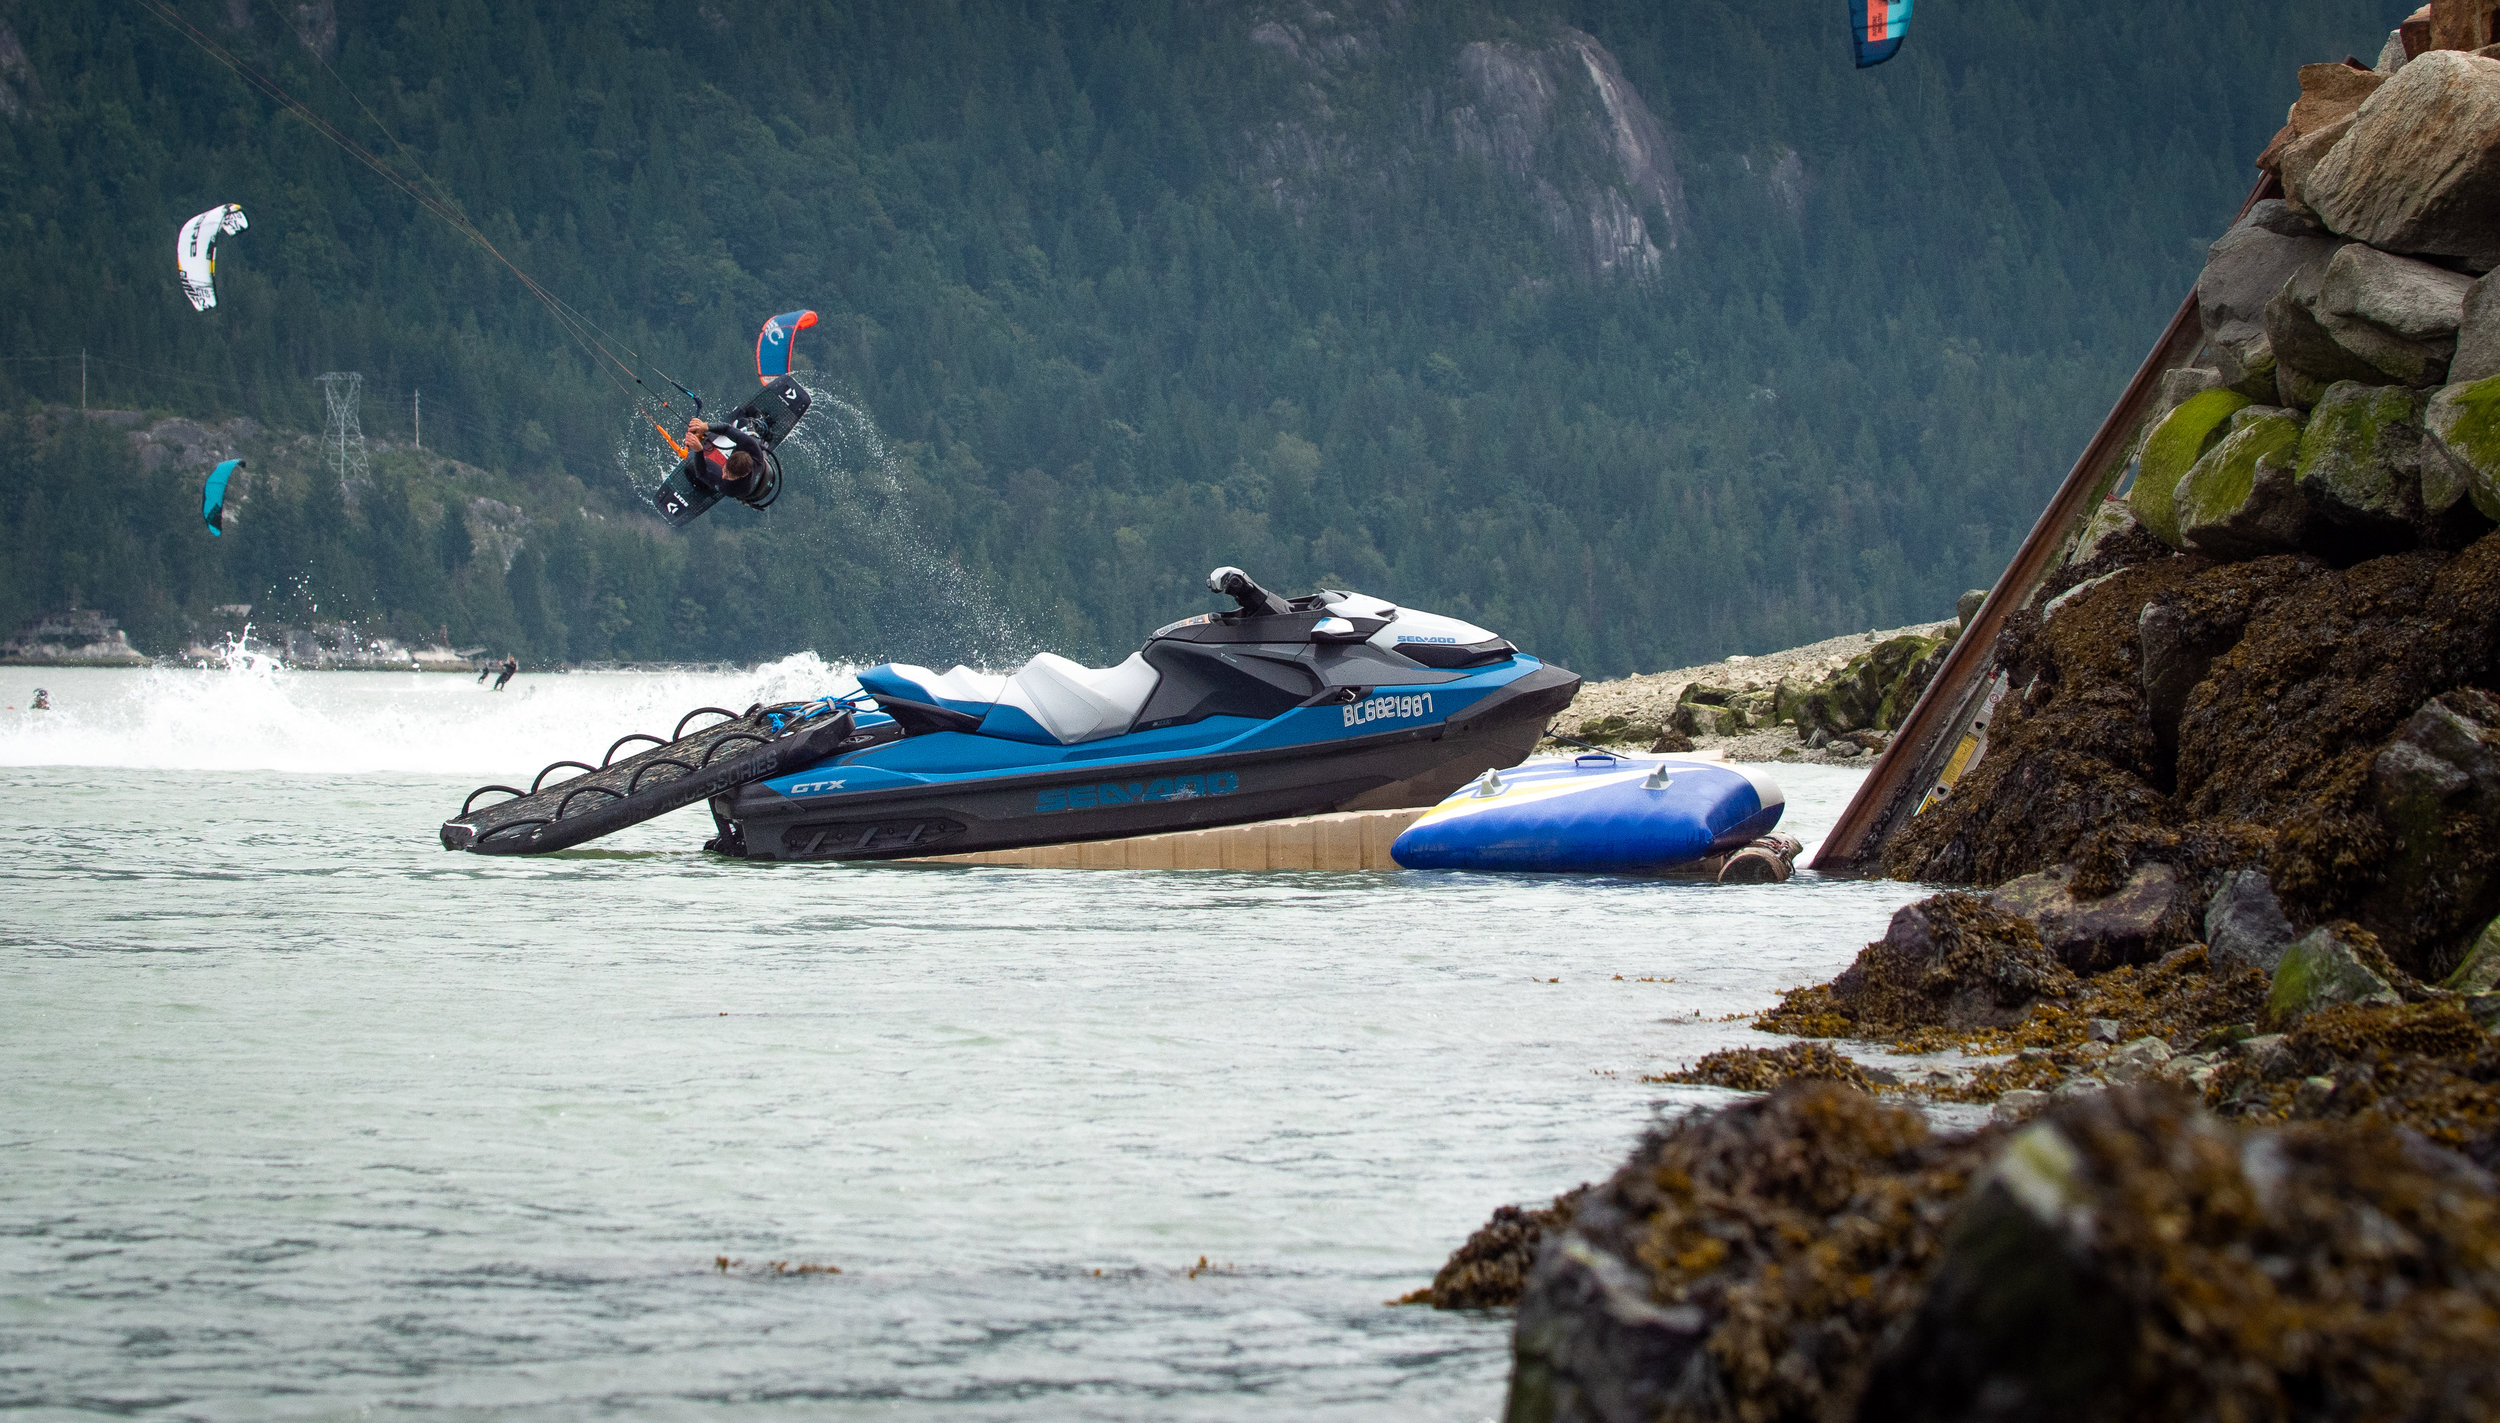 Aaron Hadlow riding at the Squamish Spit! - Photo by Luke McGillewie